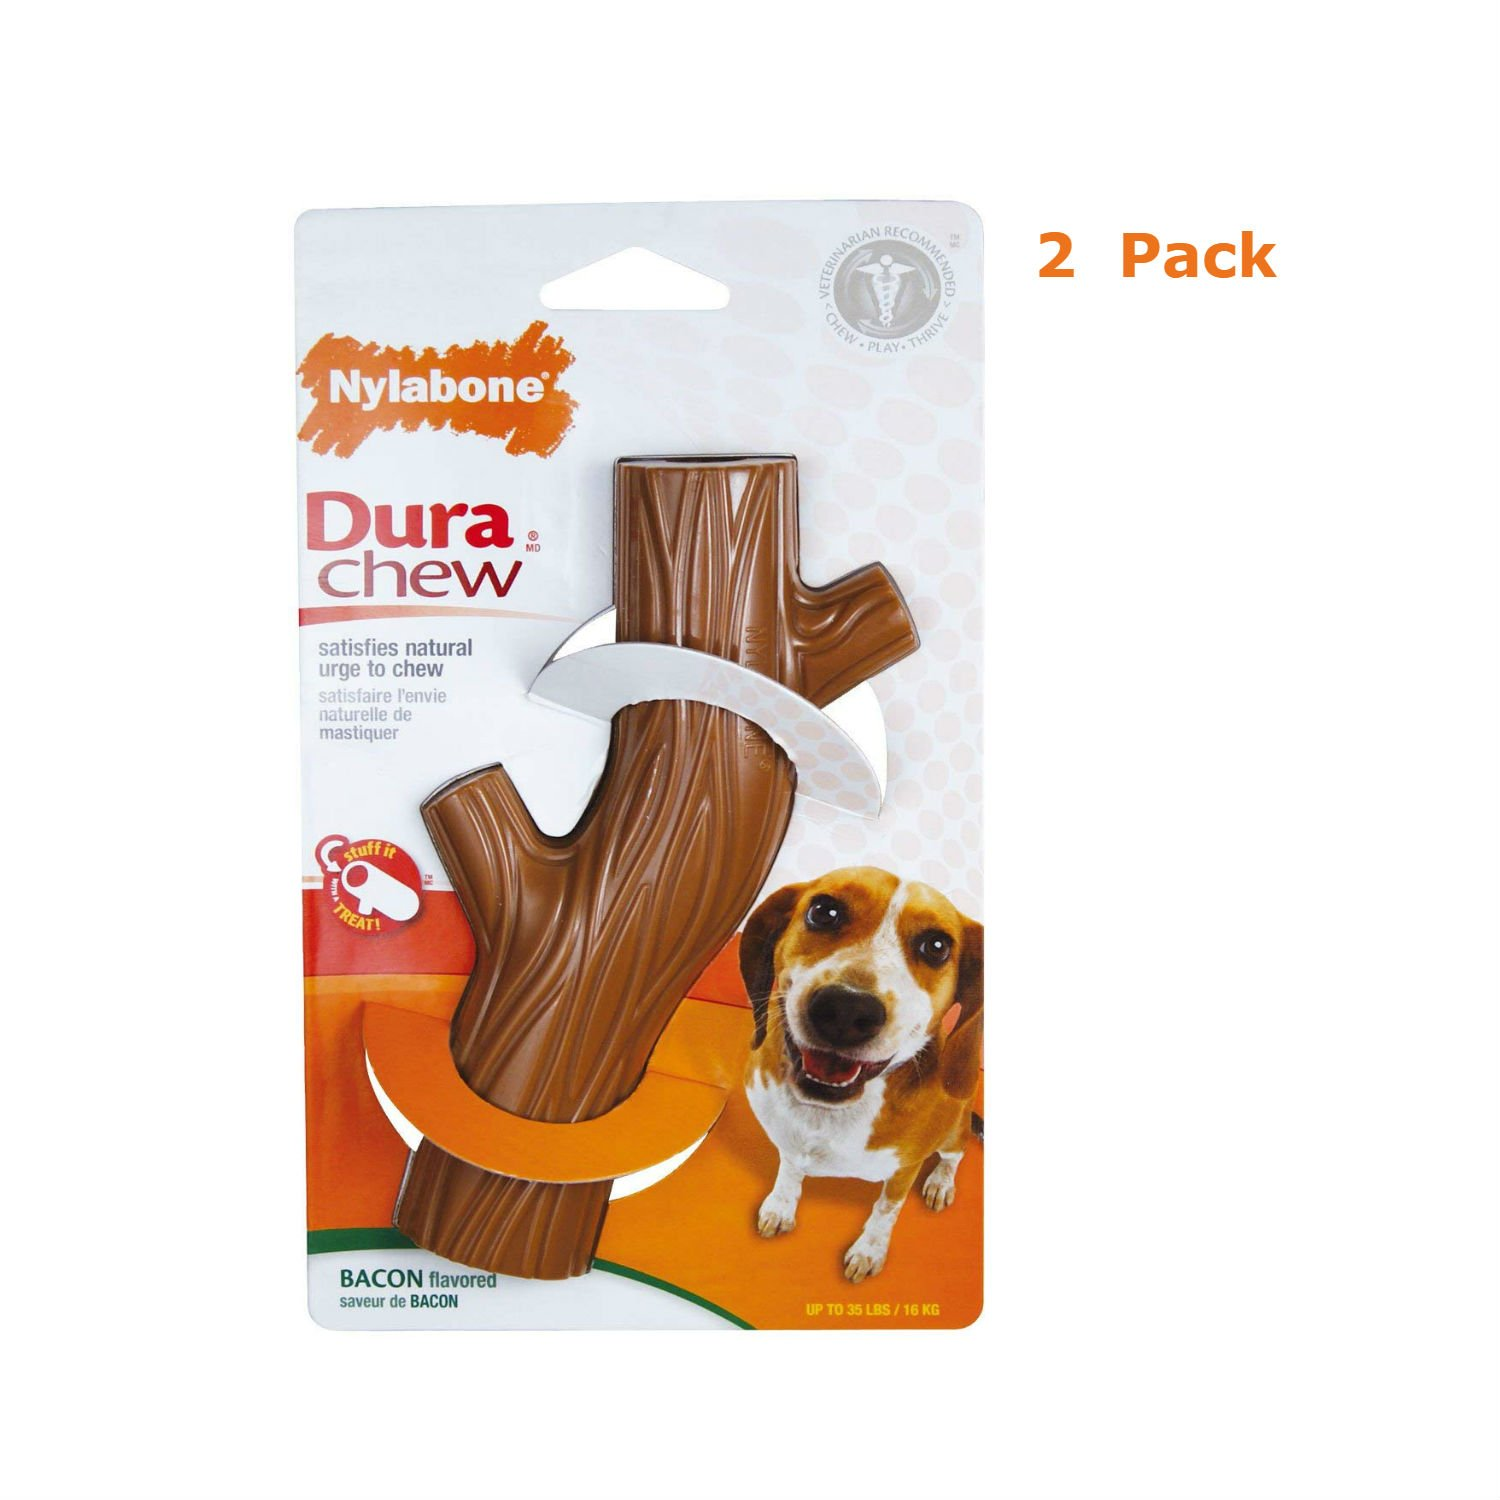 Nylabone Dura Chew Hollow Stick, Bacon Flavor - Pack Of 2